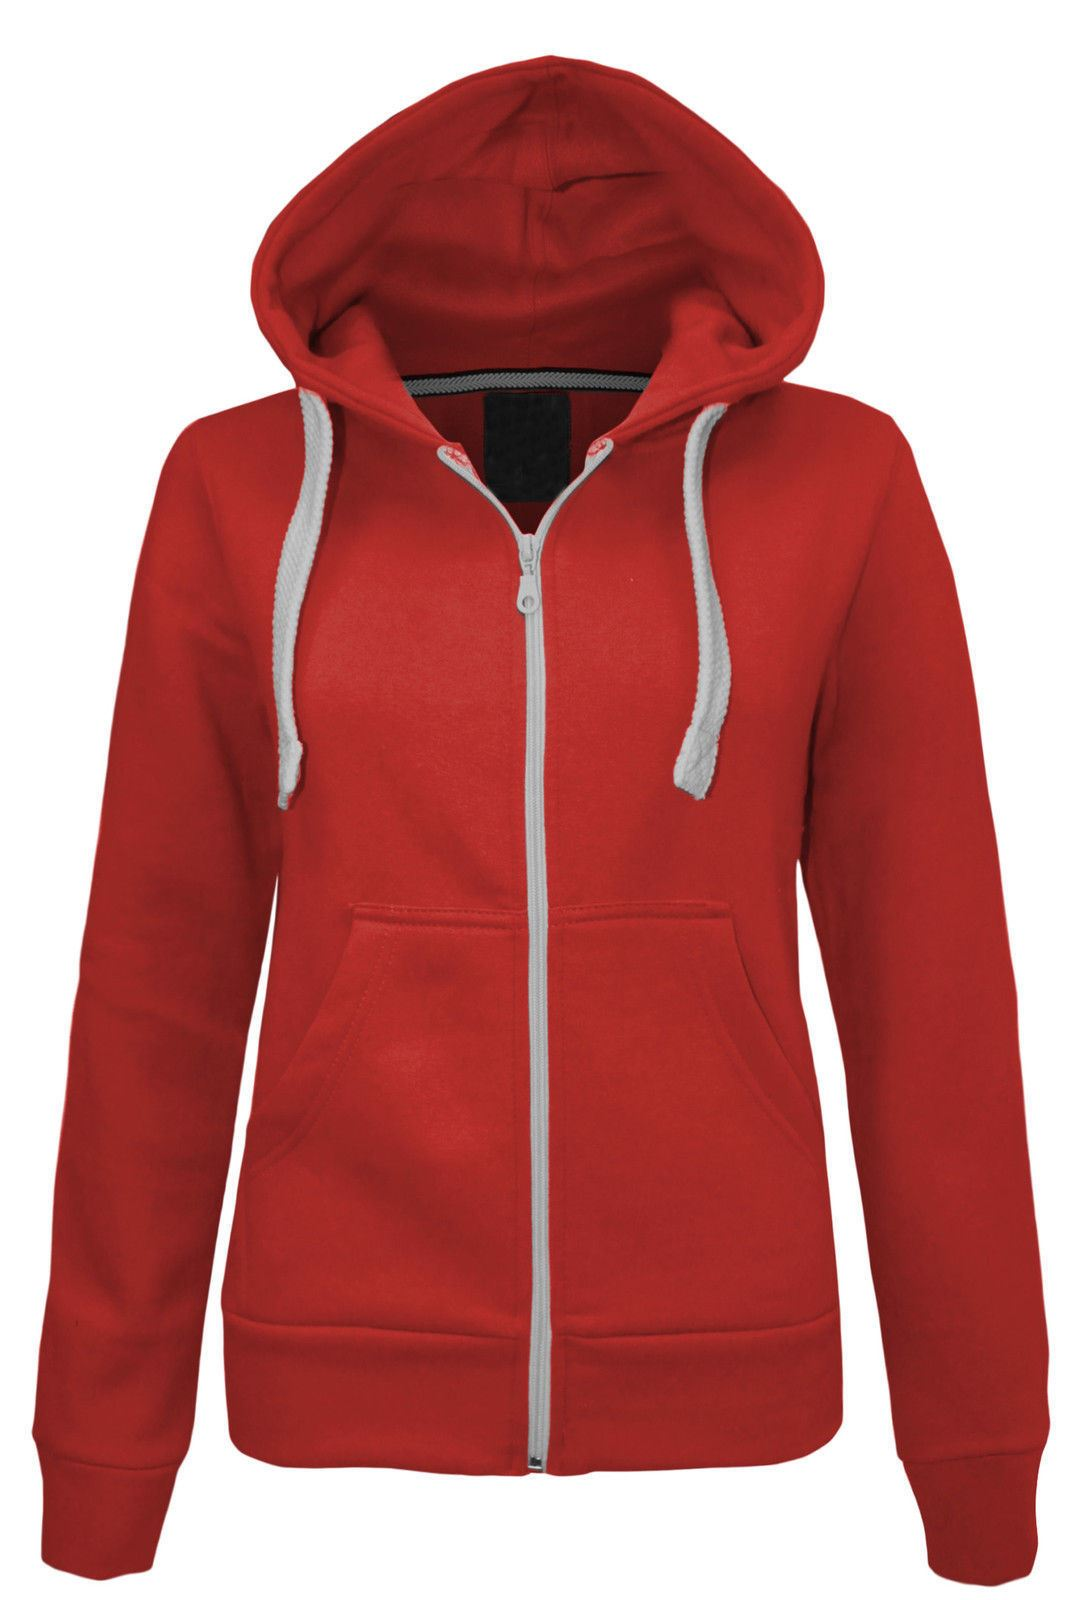 New Women's Zip Up Hooded Top Ladies Plain Colours Hoodies ...